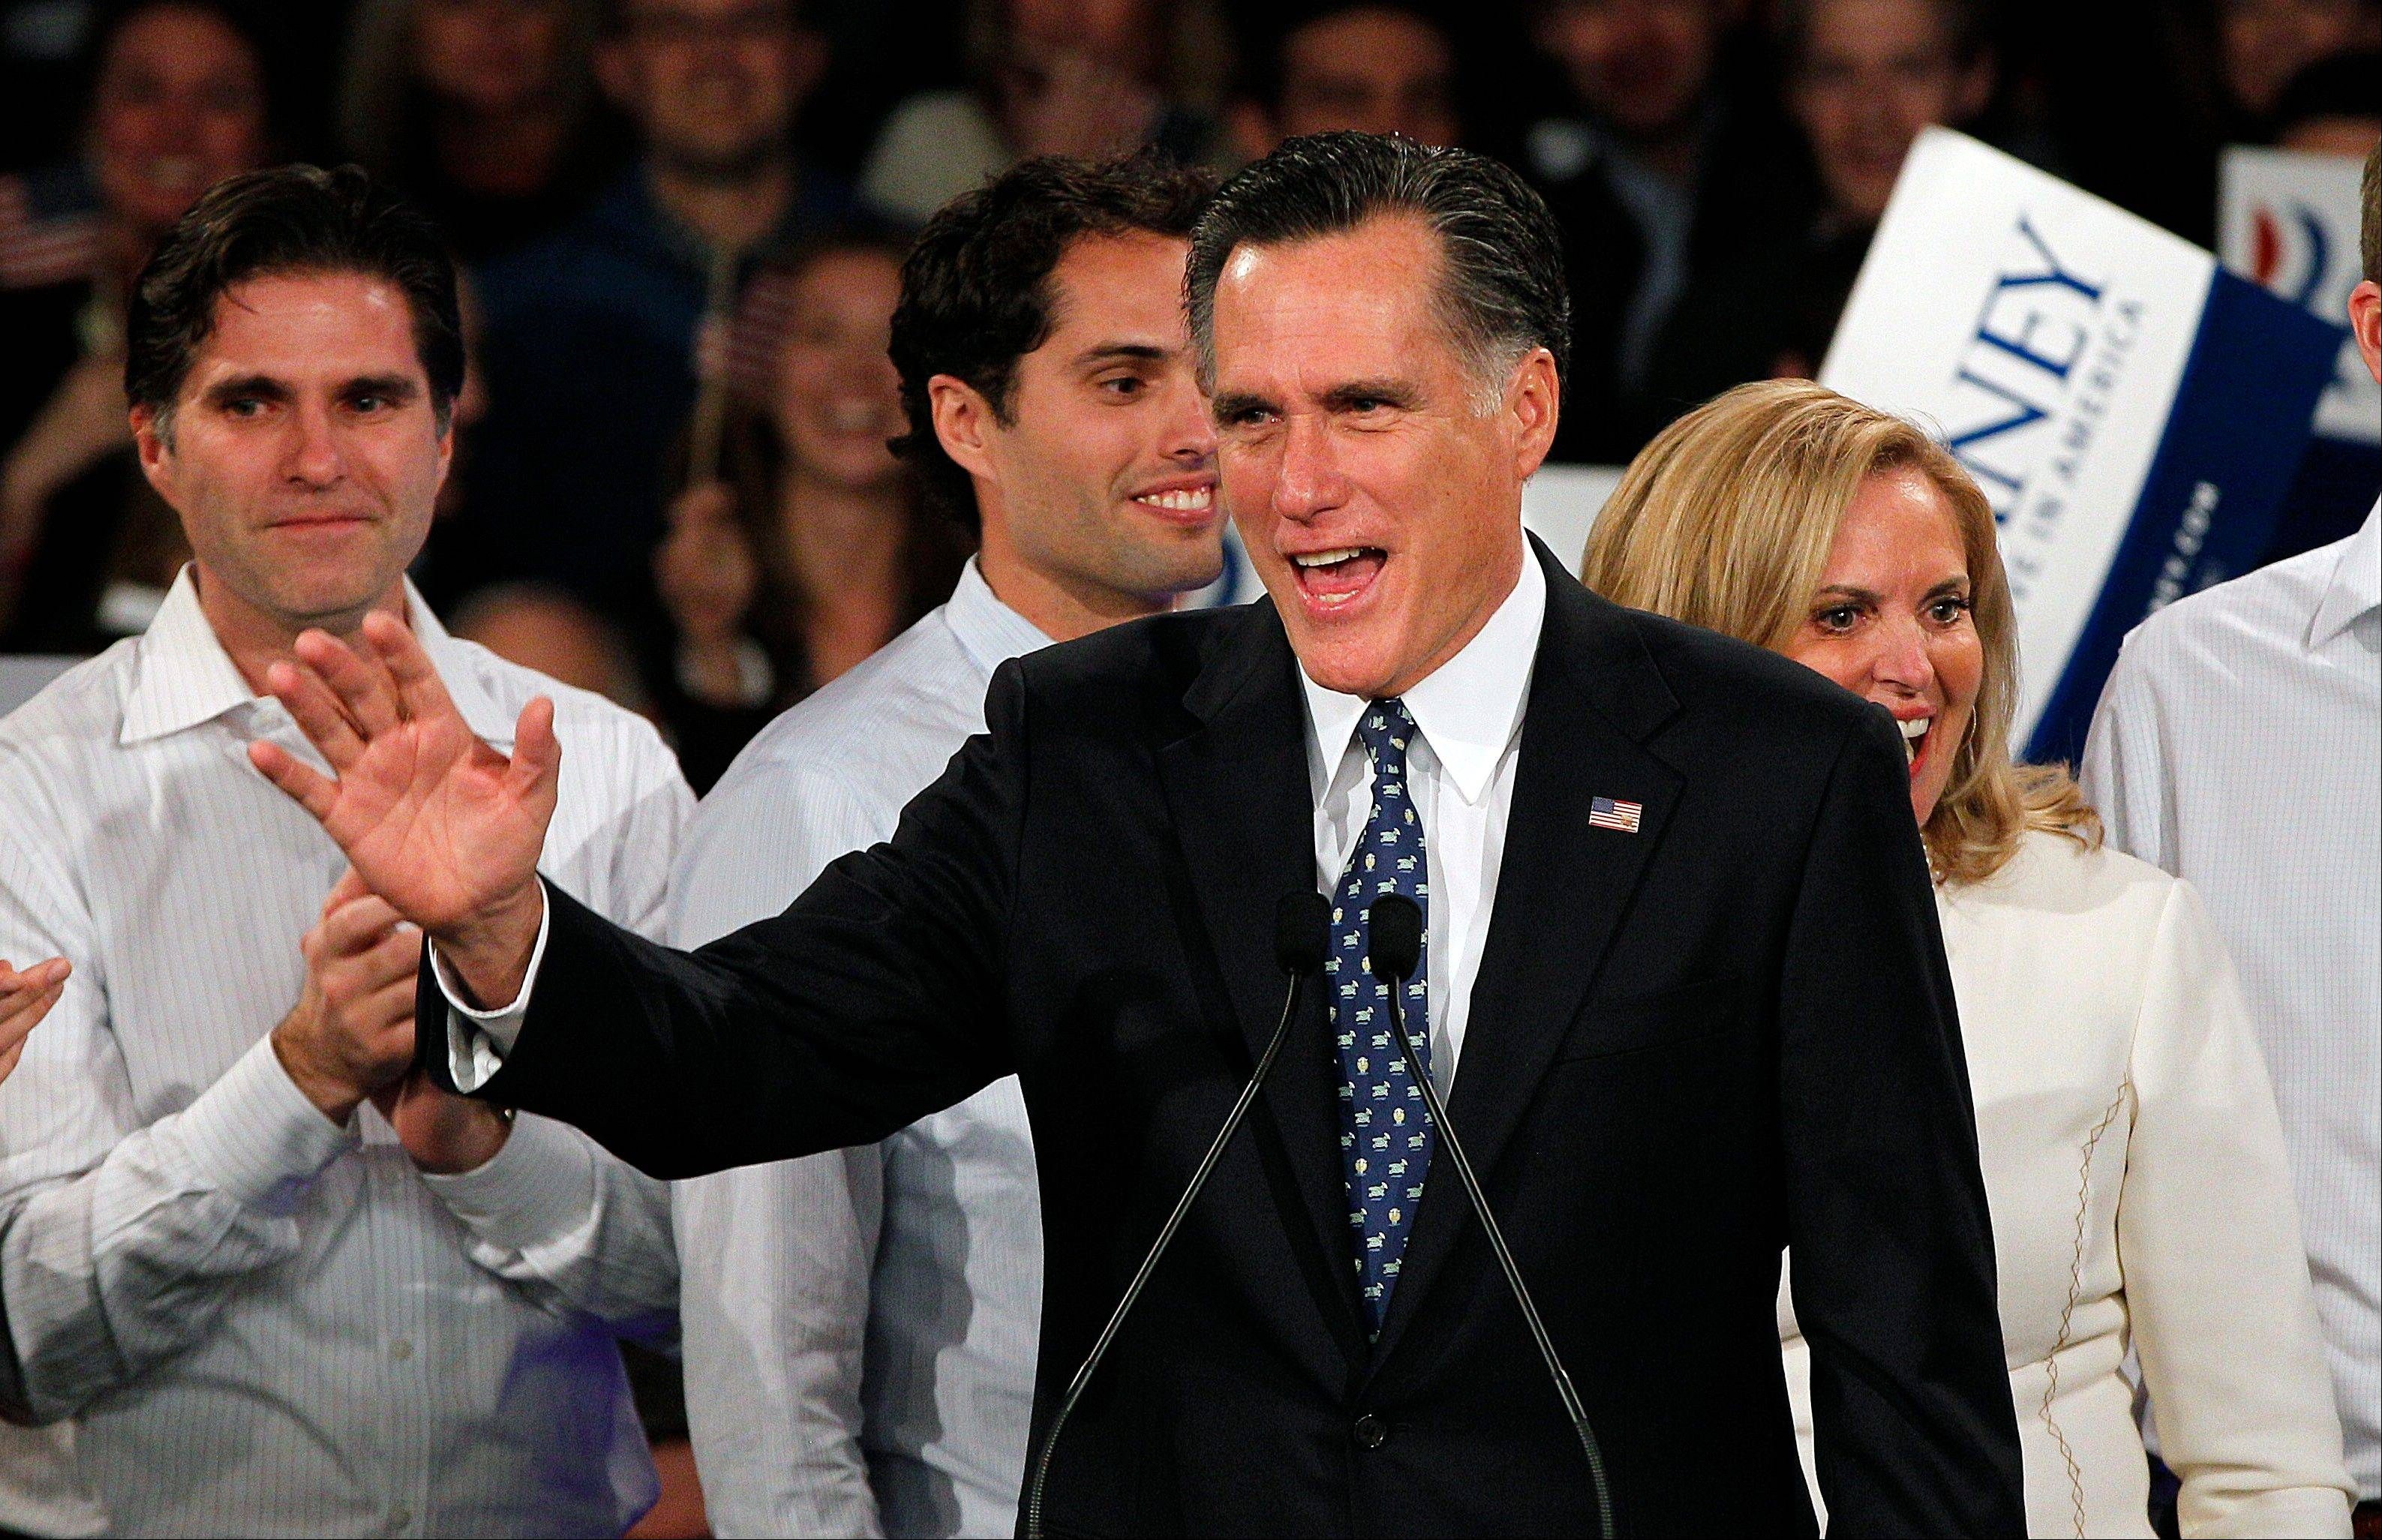 Former Massachusetts Gov. Mitt Romney gets family support at a rally with sons Tagg, from left, and Craig and wife Ann.